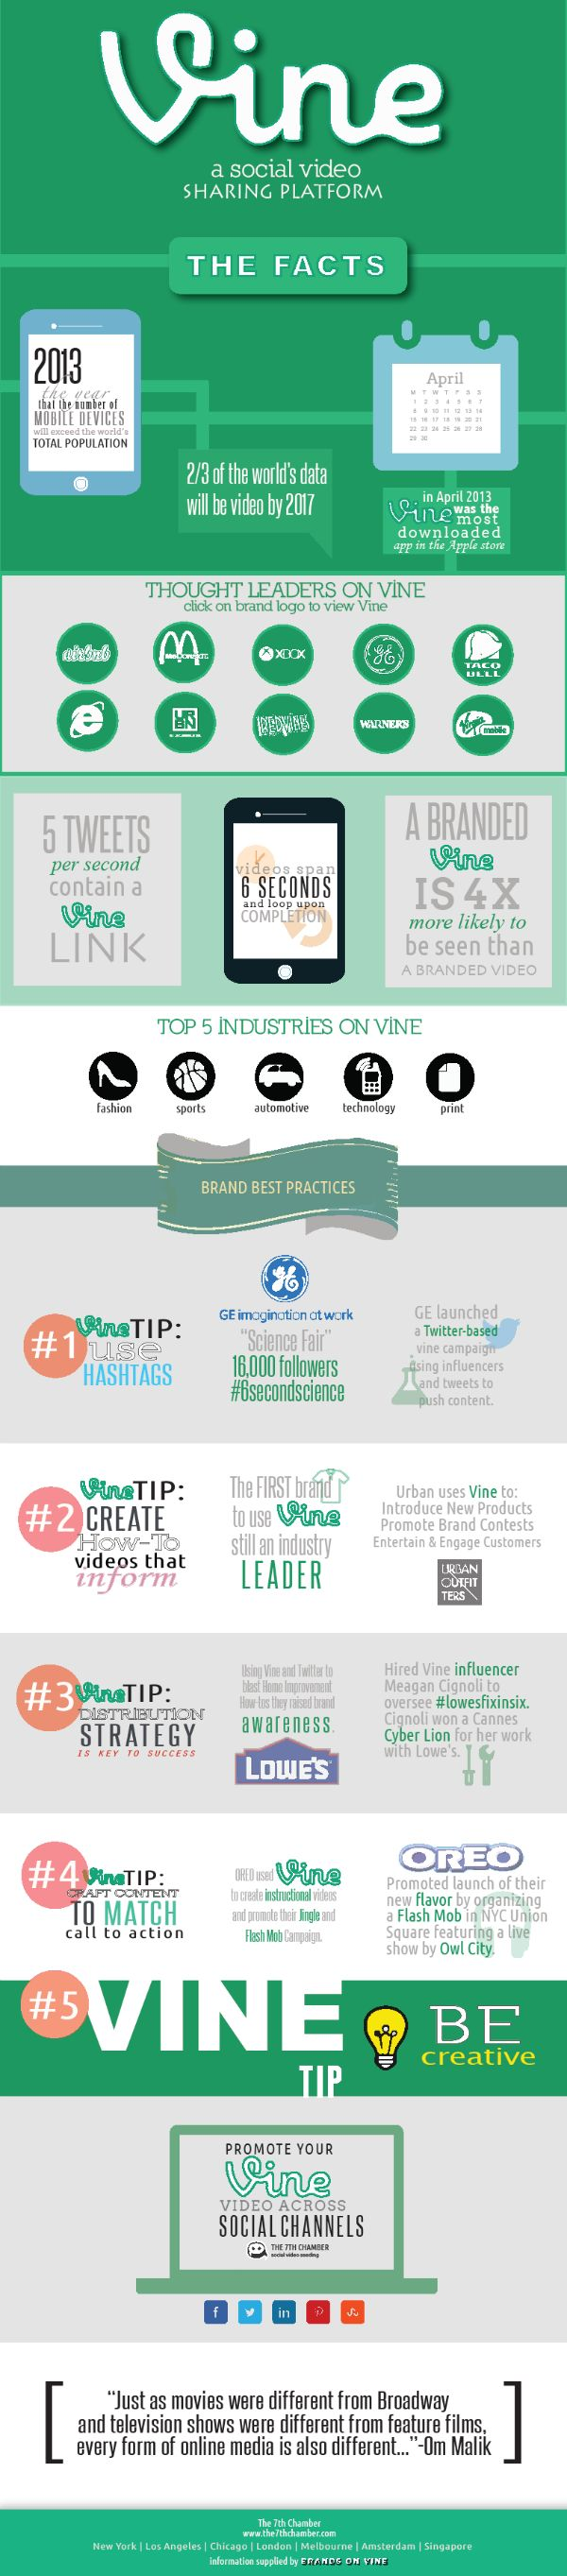 5 Tips to Create Successful Vine Videos [Infographic]